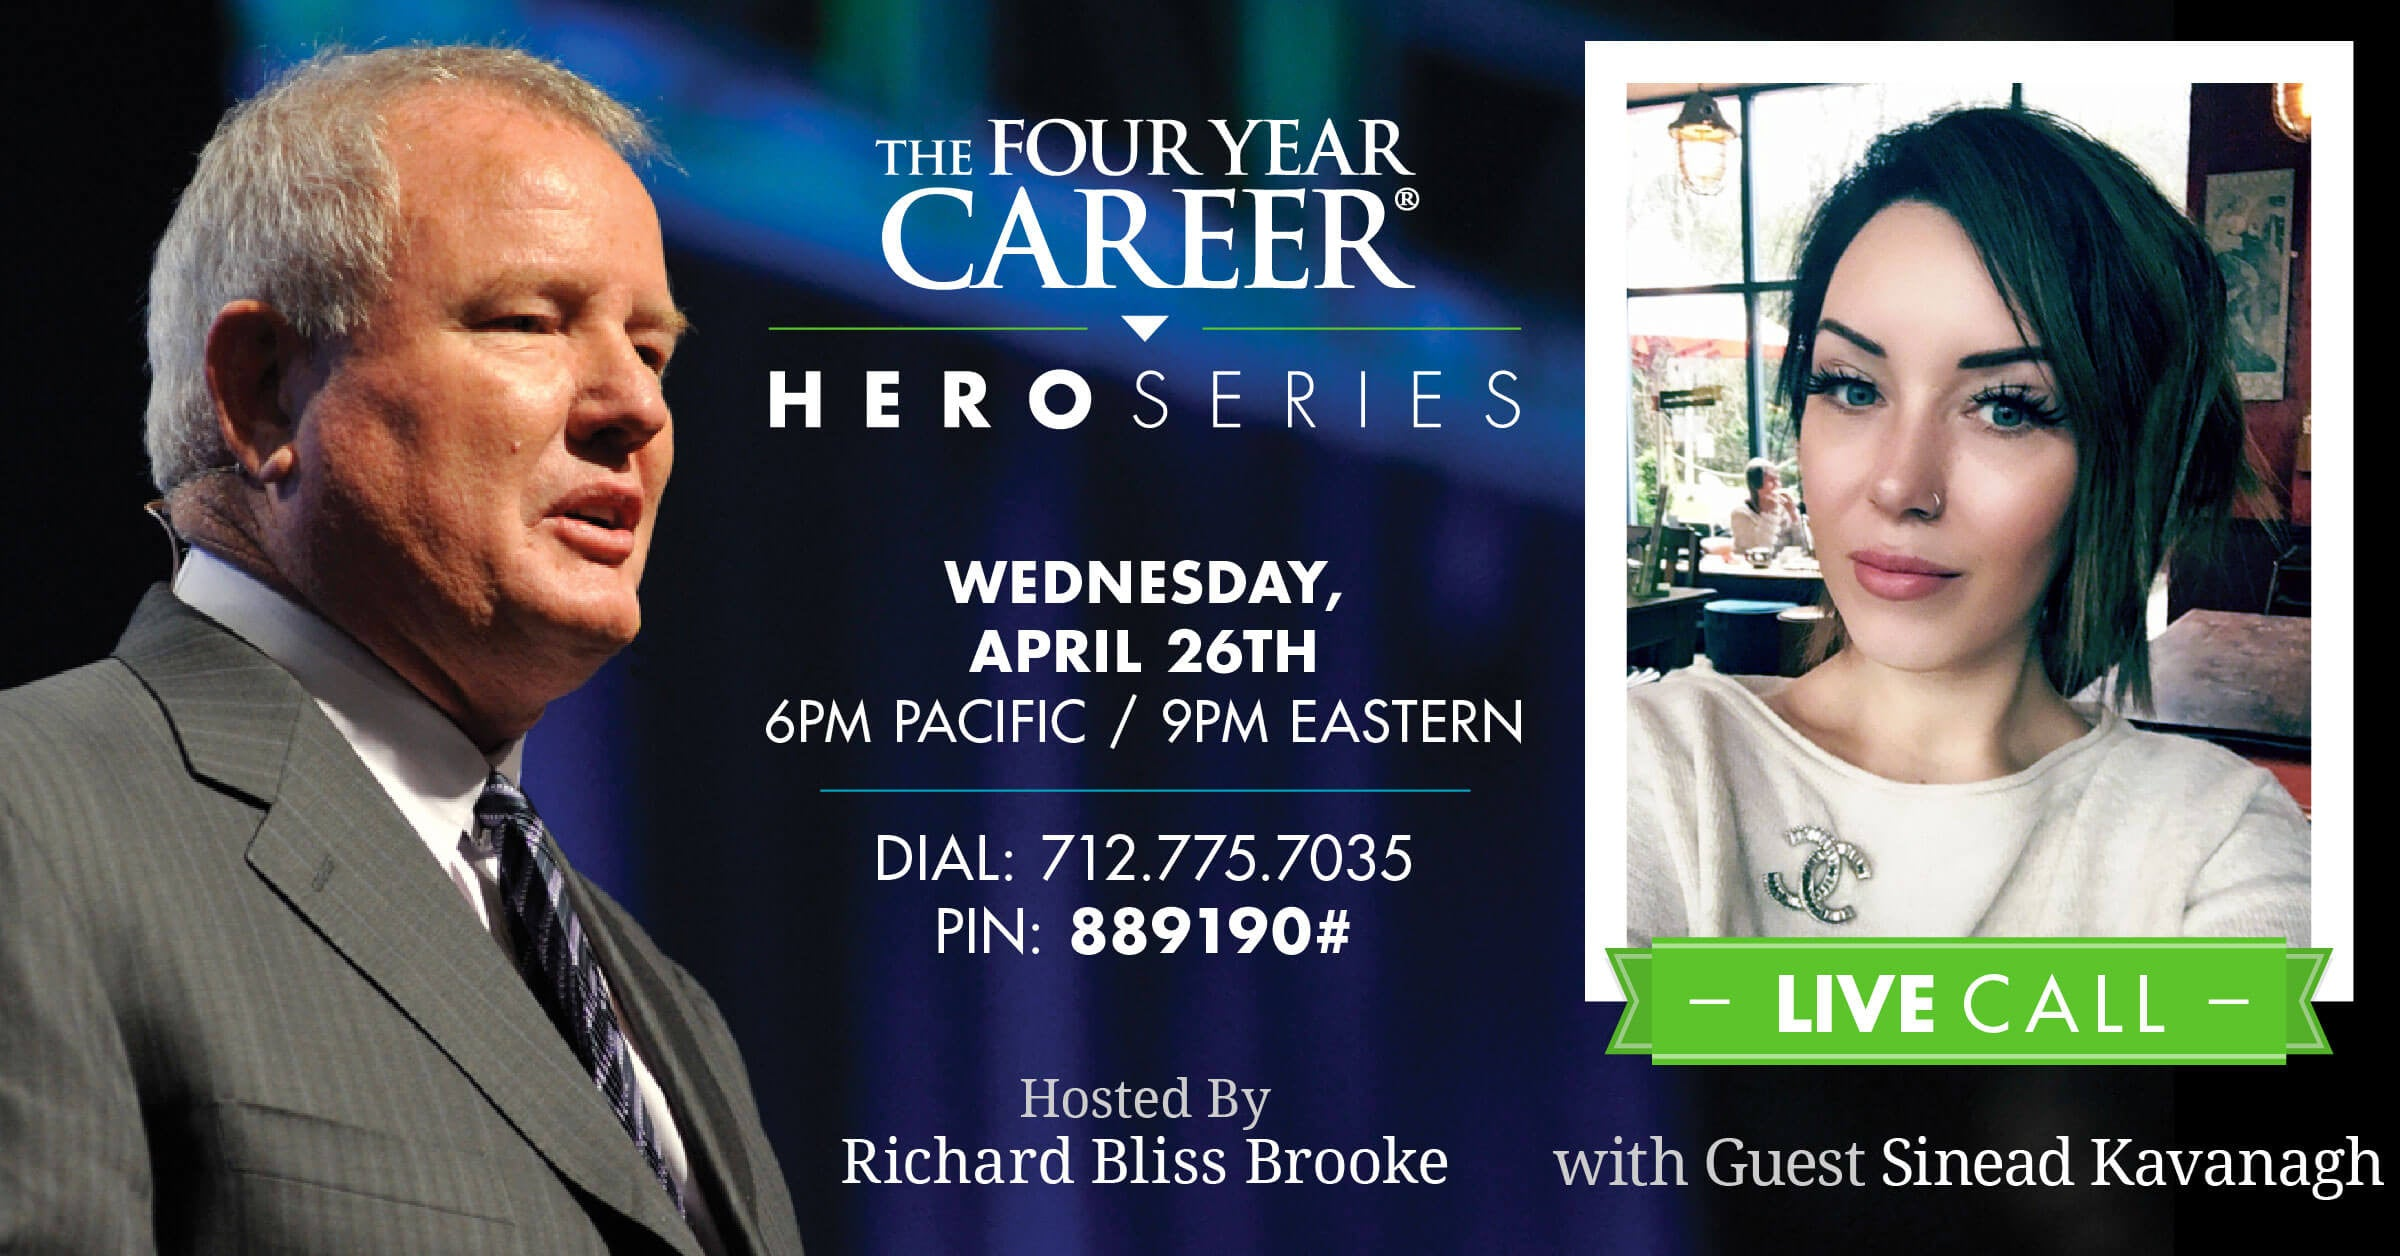 Hero Series LIVE Call with Sinead Kavanagh